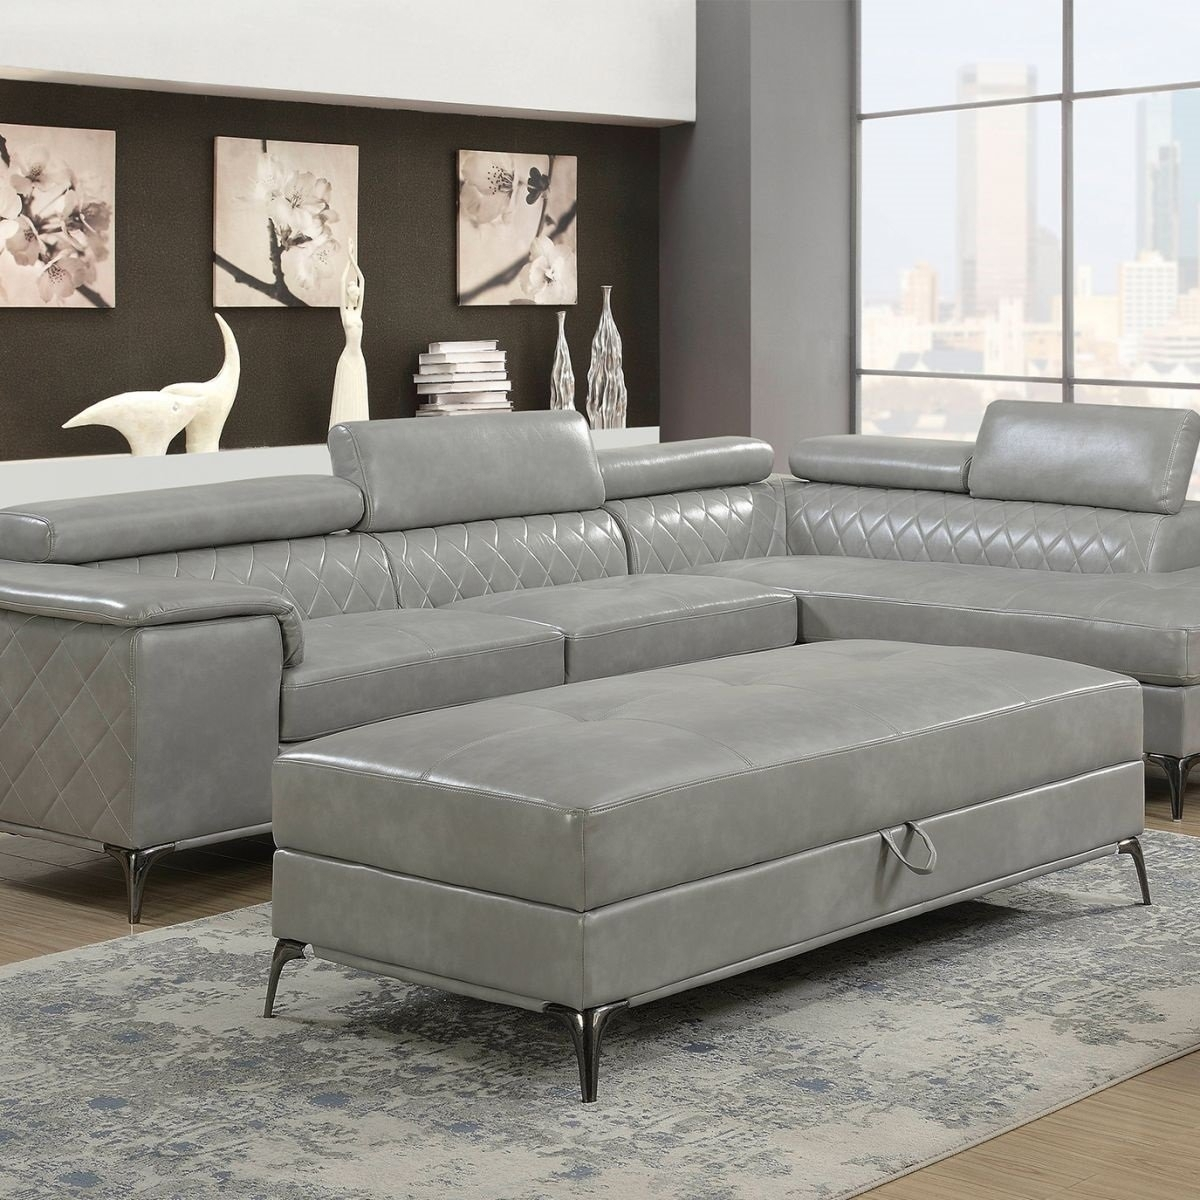 Worthington Grey 2 Pc Sectional & Ottoman | Badcock & More With Cosmos Grey 2 Piece Sectionals With Raf Chaise (View 17 of 25)